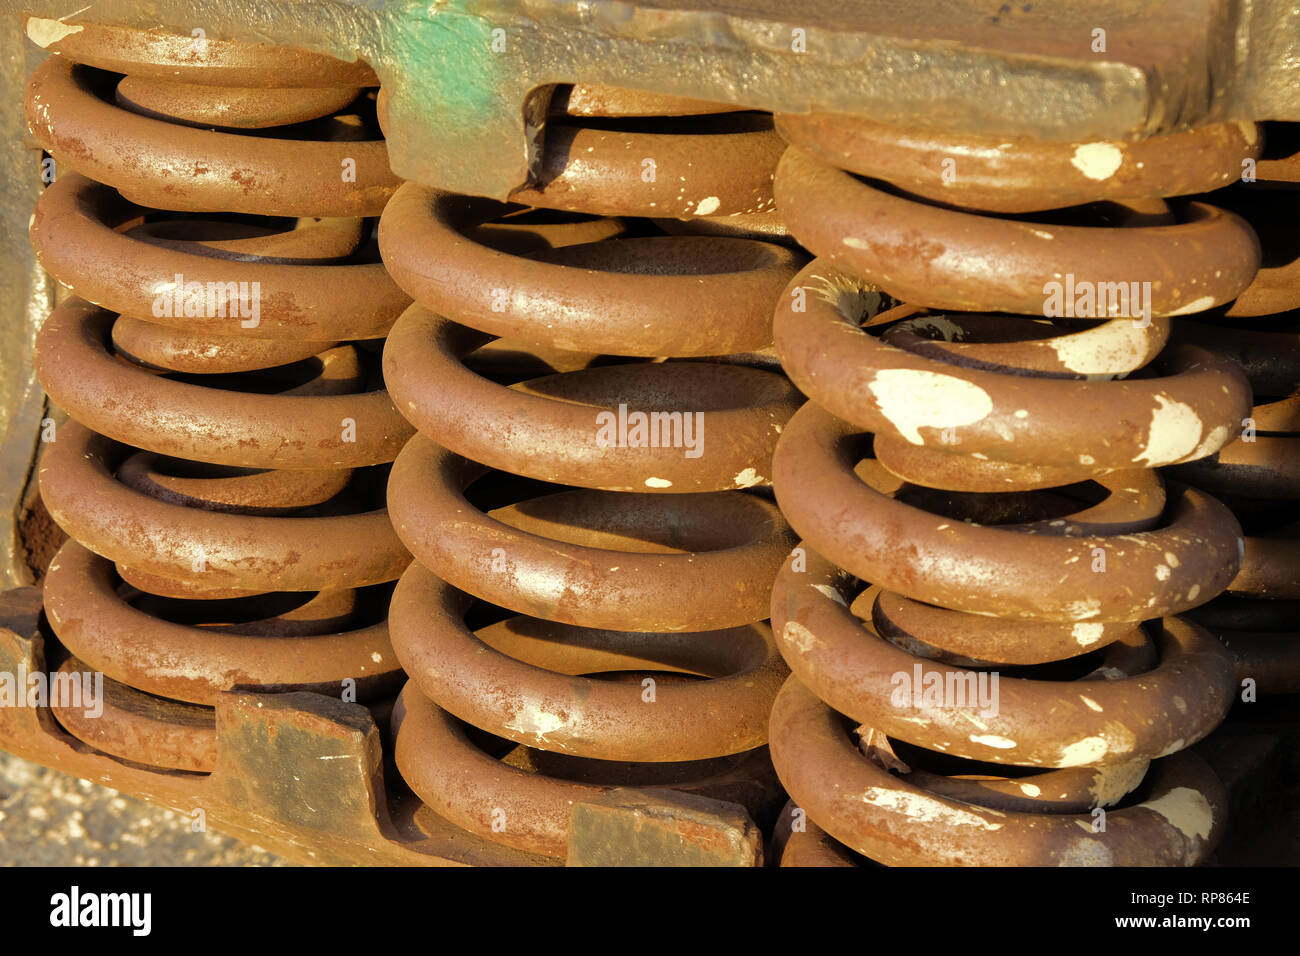 Coil springs on a railroad car; springs on a freight train; Bryan, Texas, USA. - Stock Image